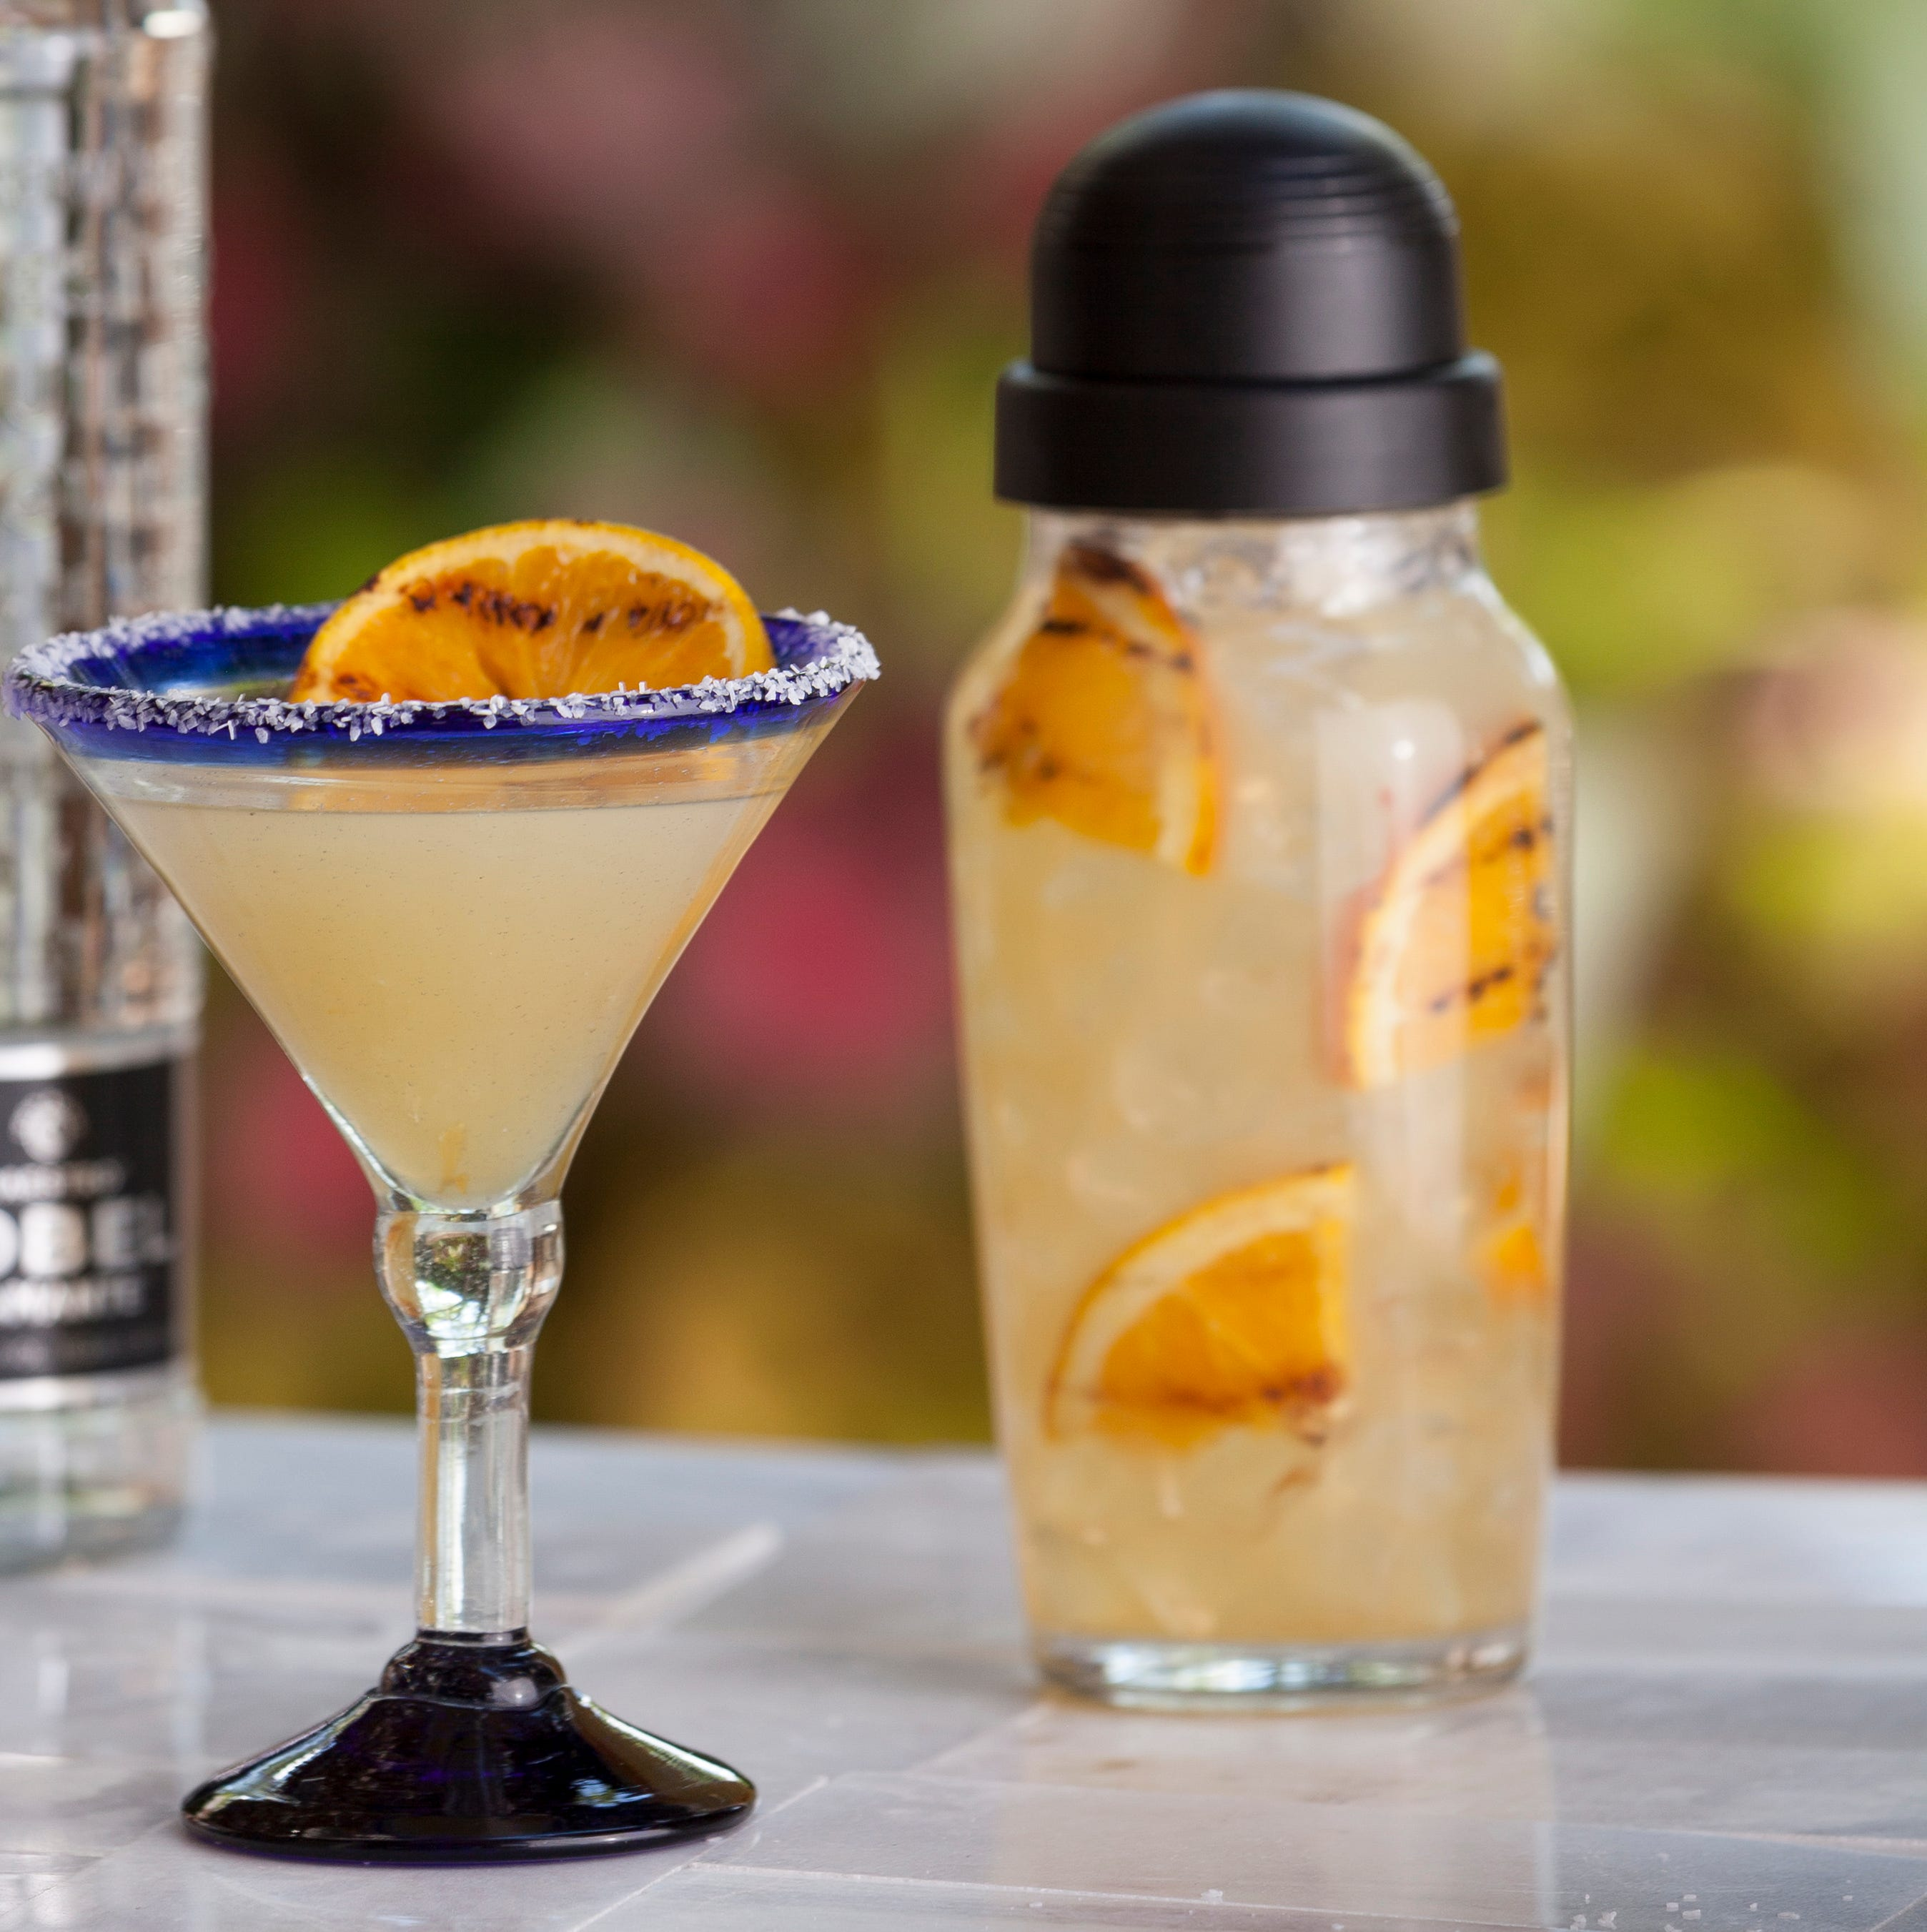 Celebrate National Margarita Day with specials, deals around Indianapolis